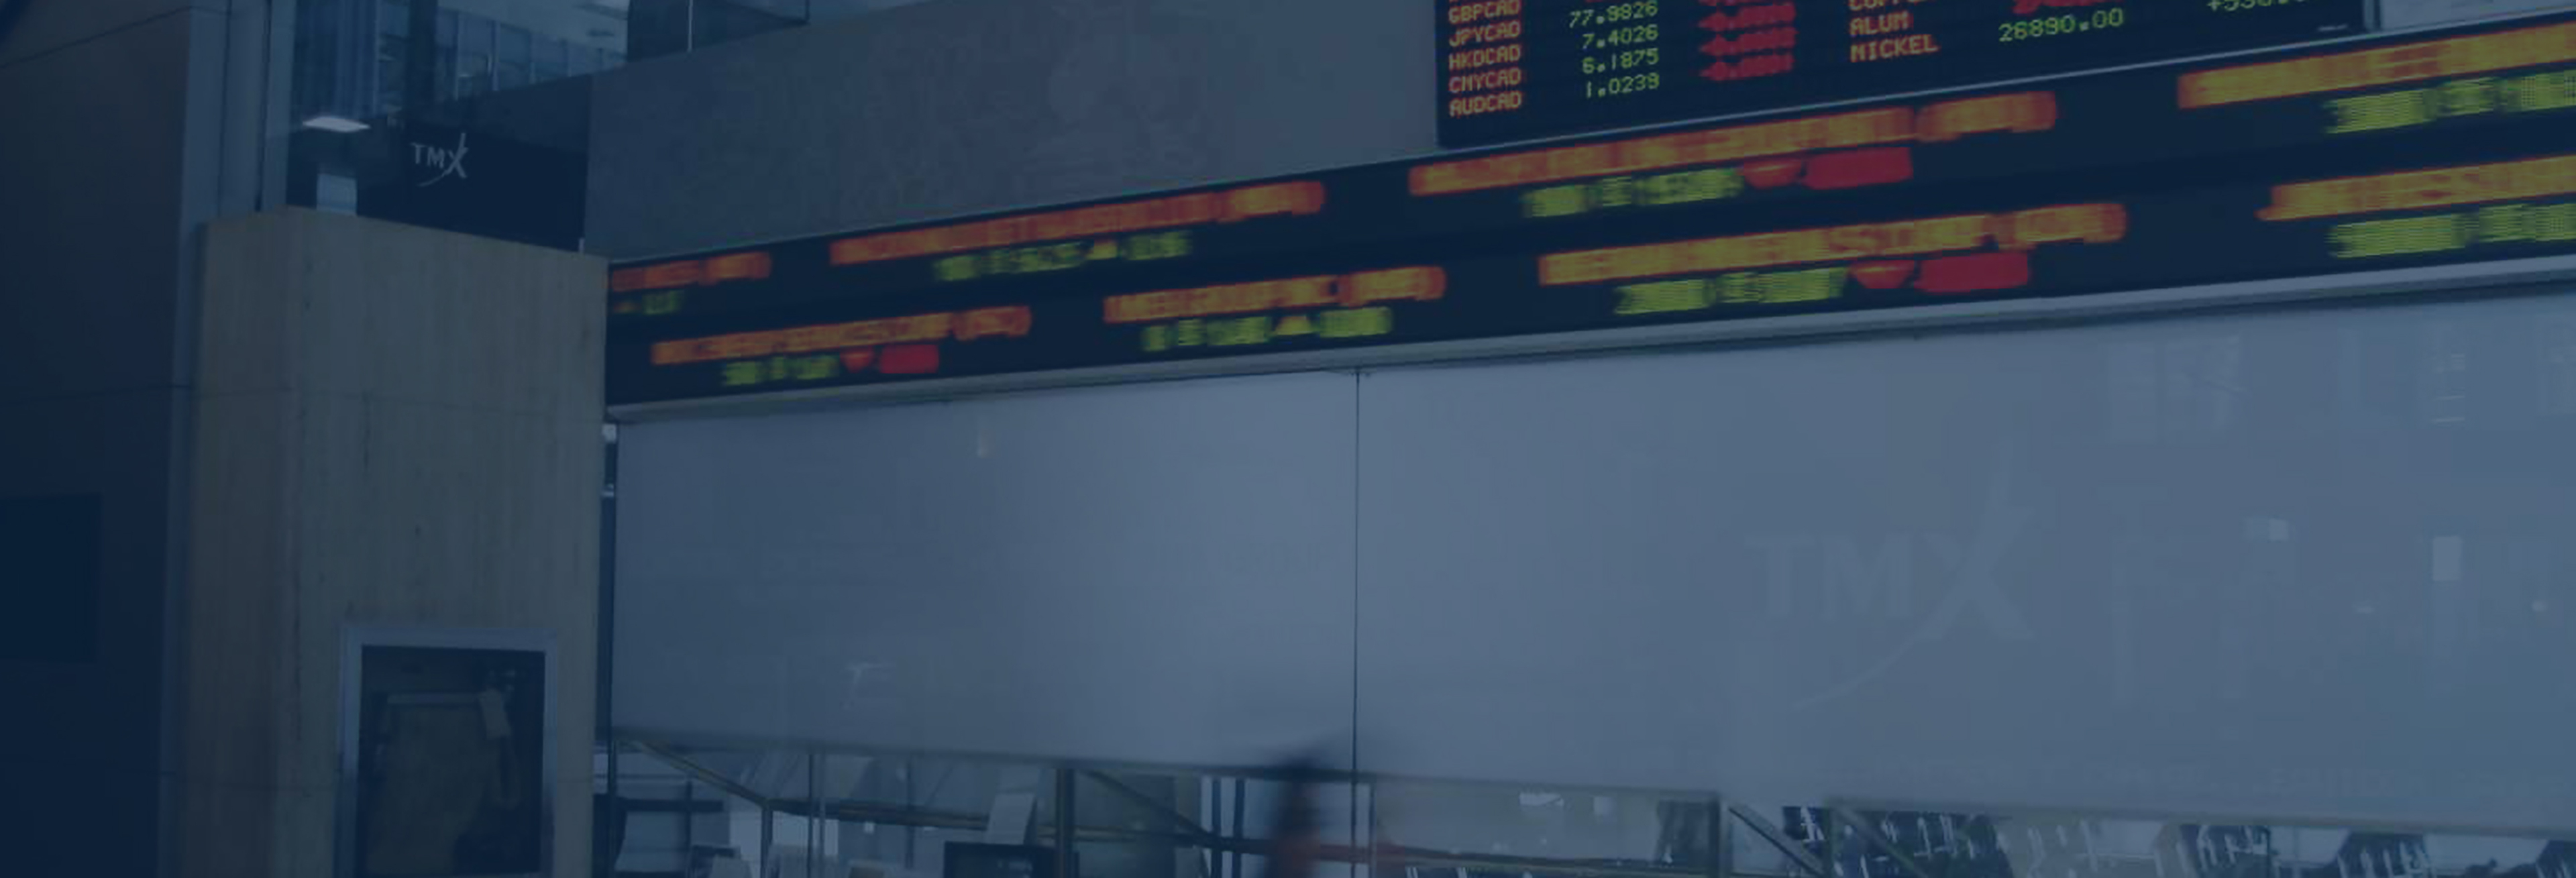 stock screen on wall in banking institution